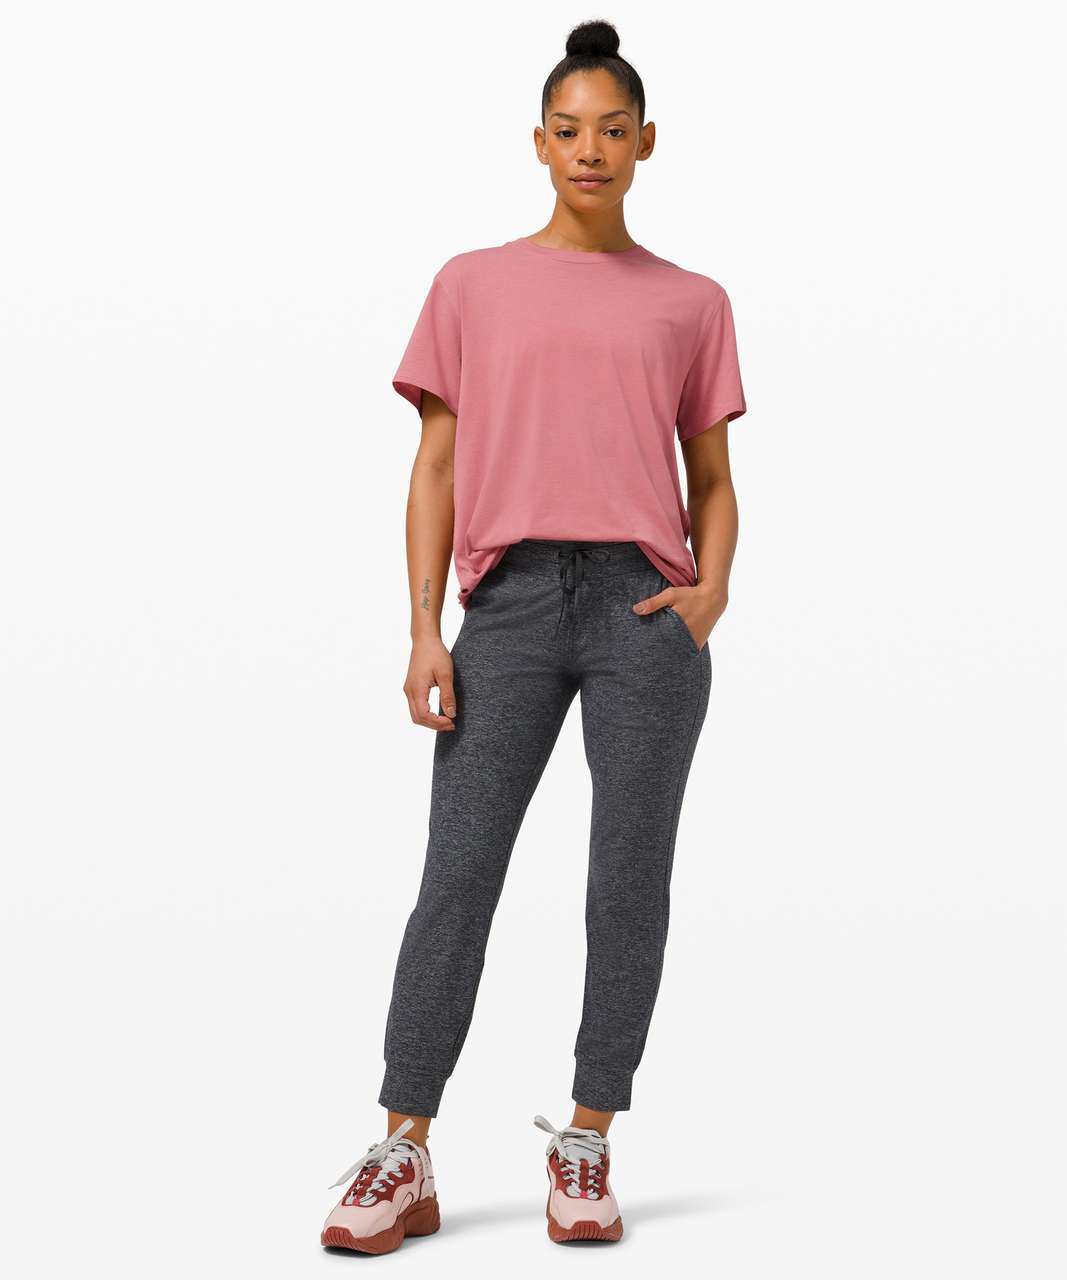 Lululemon All Yours Tee - Brier Rose